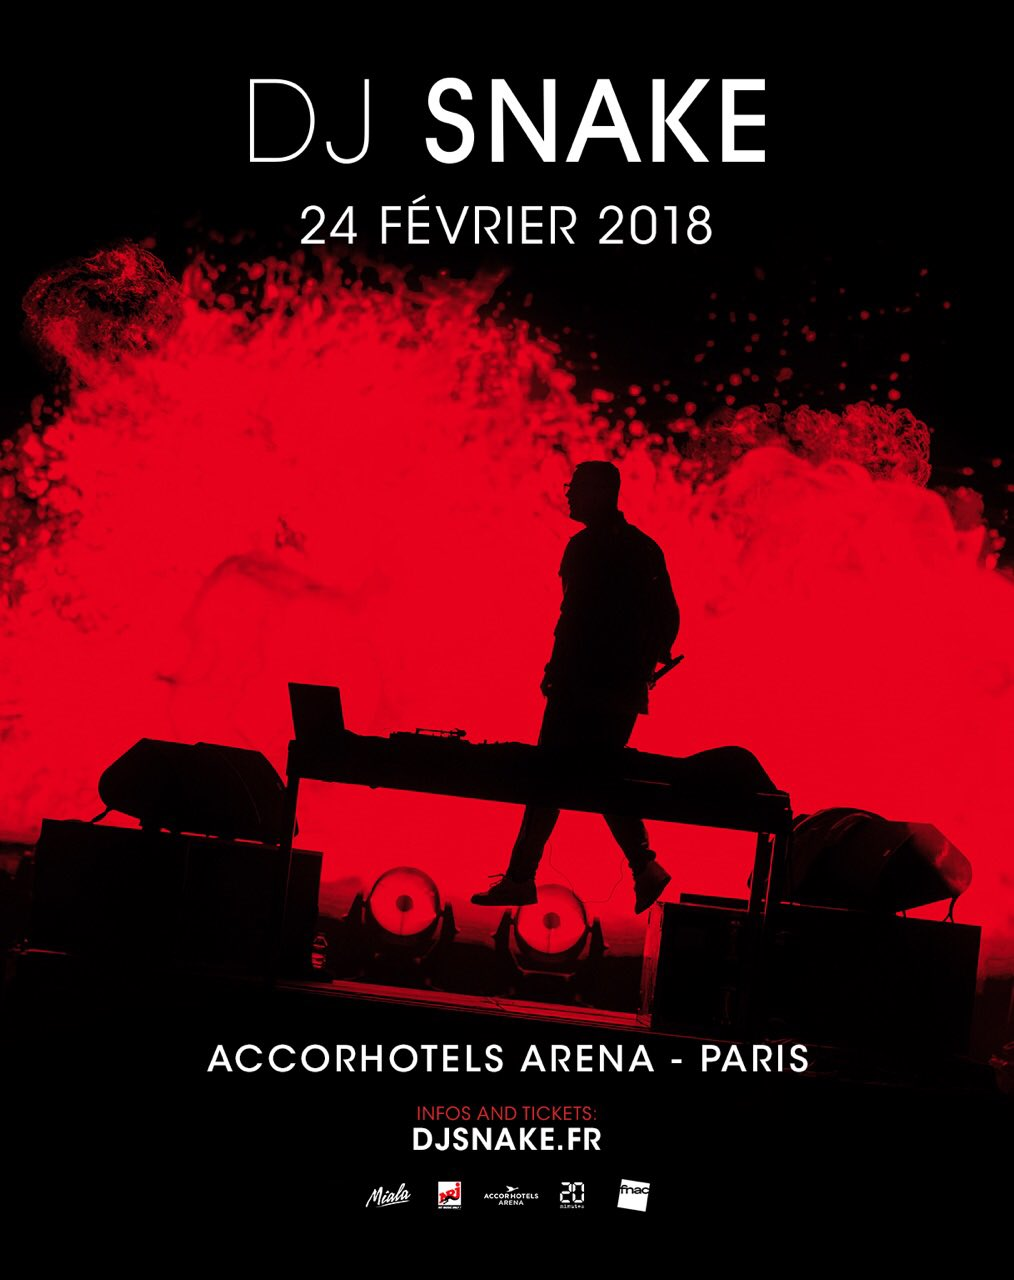 '@AccorH_Arena ���� Samedi 24 Février 2018 Fan Pre-Sale ���� https://t.co/MRS1HQwJ3E https://t.co/utYniapz3k